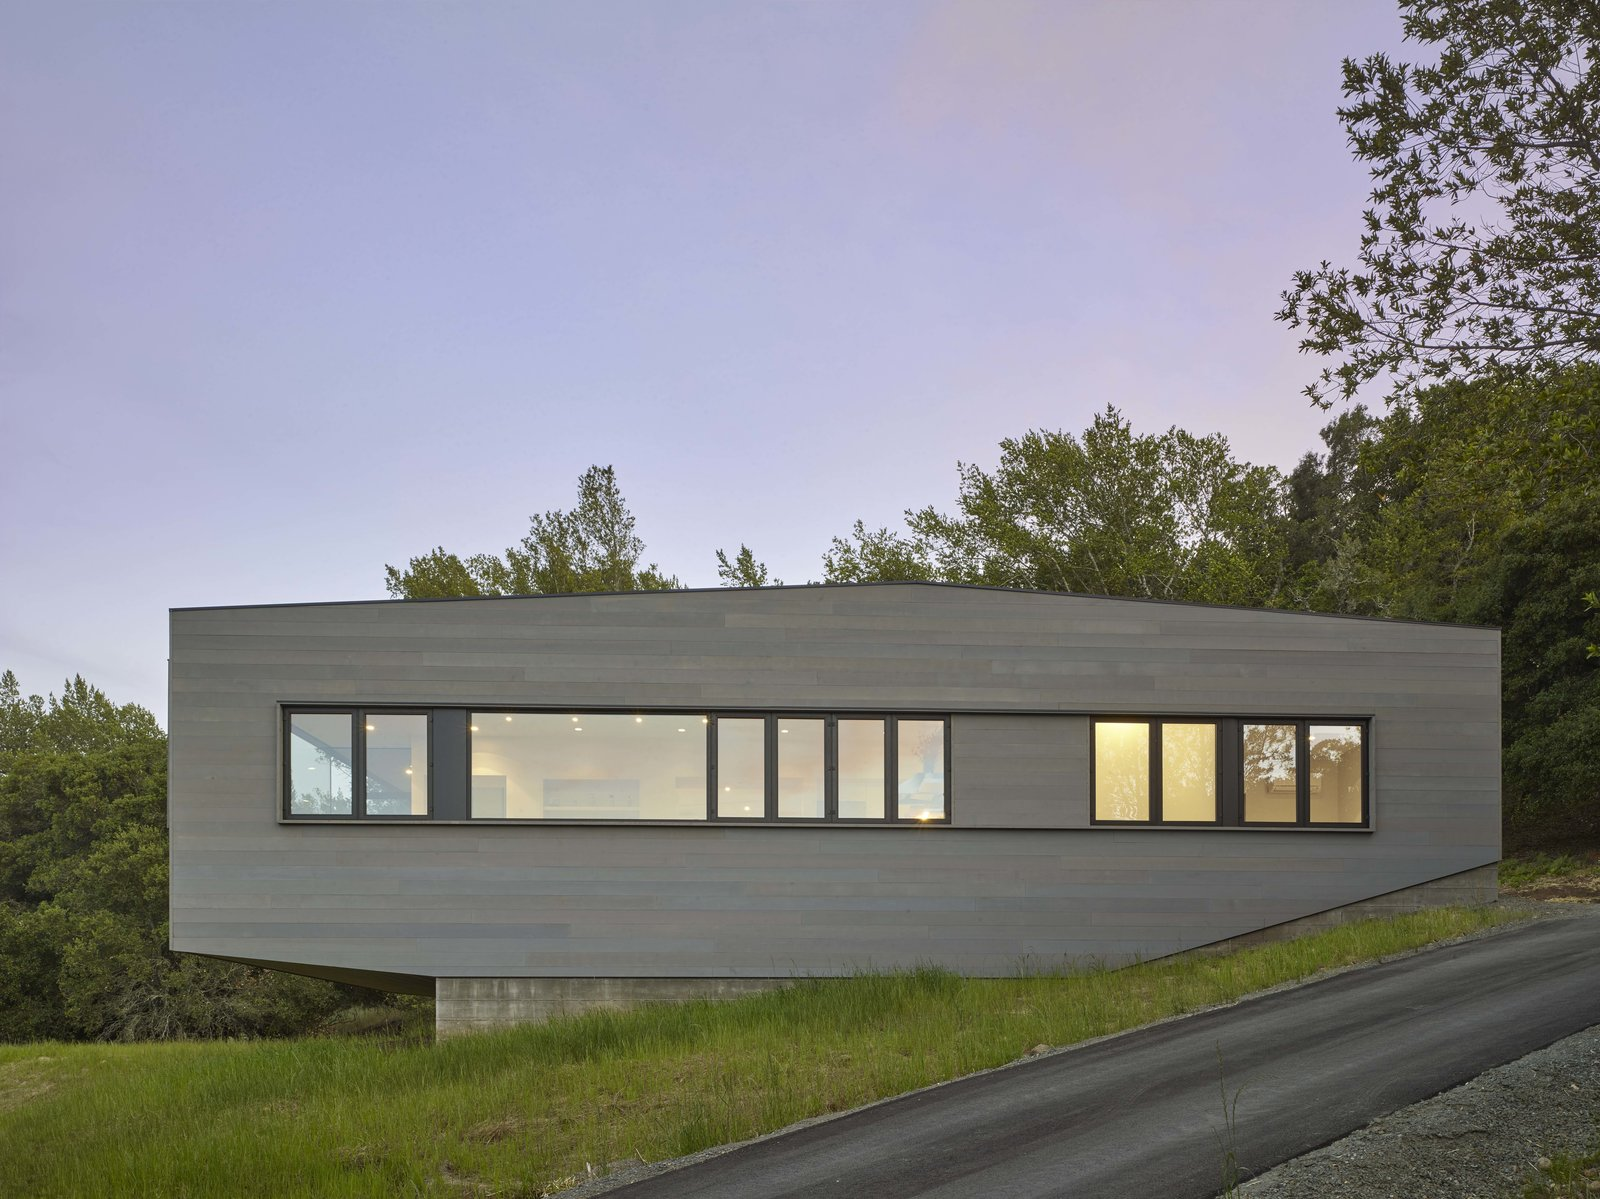 Exterior, Wood Siding Material, and House Building Type Side Elevation  Box on the Rock by Schwartz and Architecture